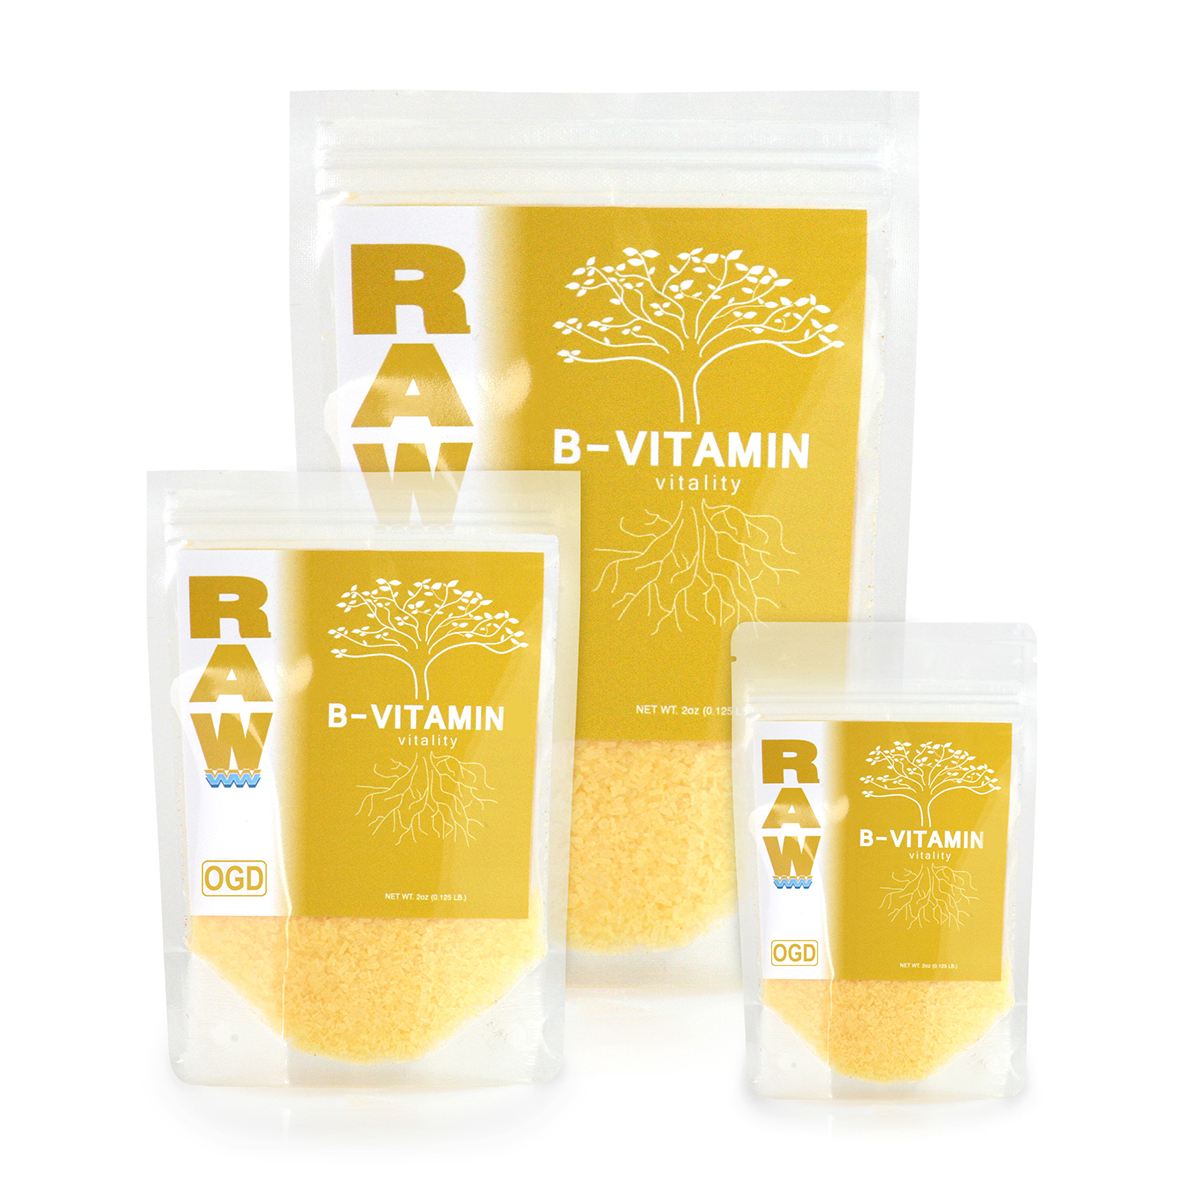 NPK RAW B-Vitamin 2 LBS